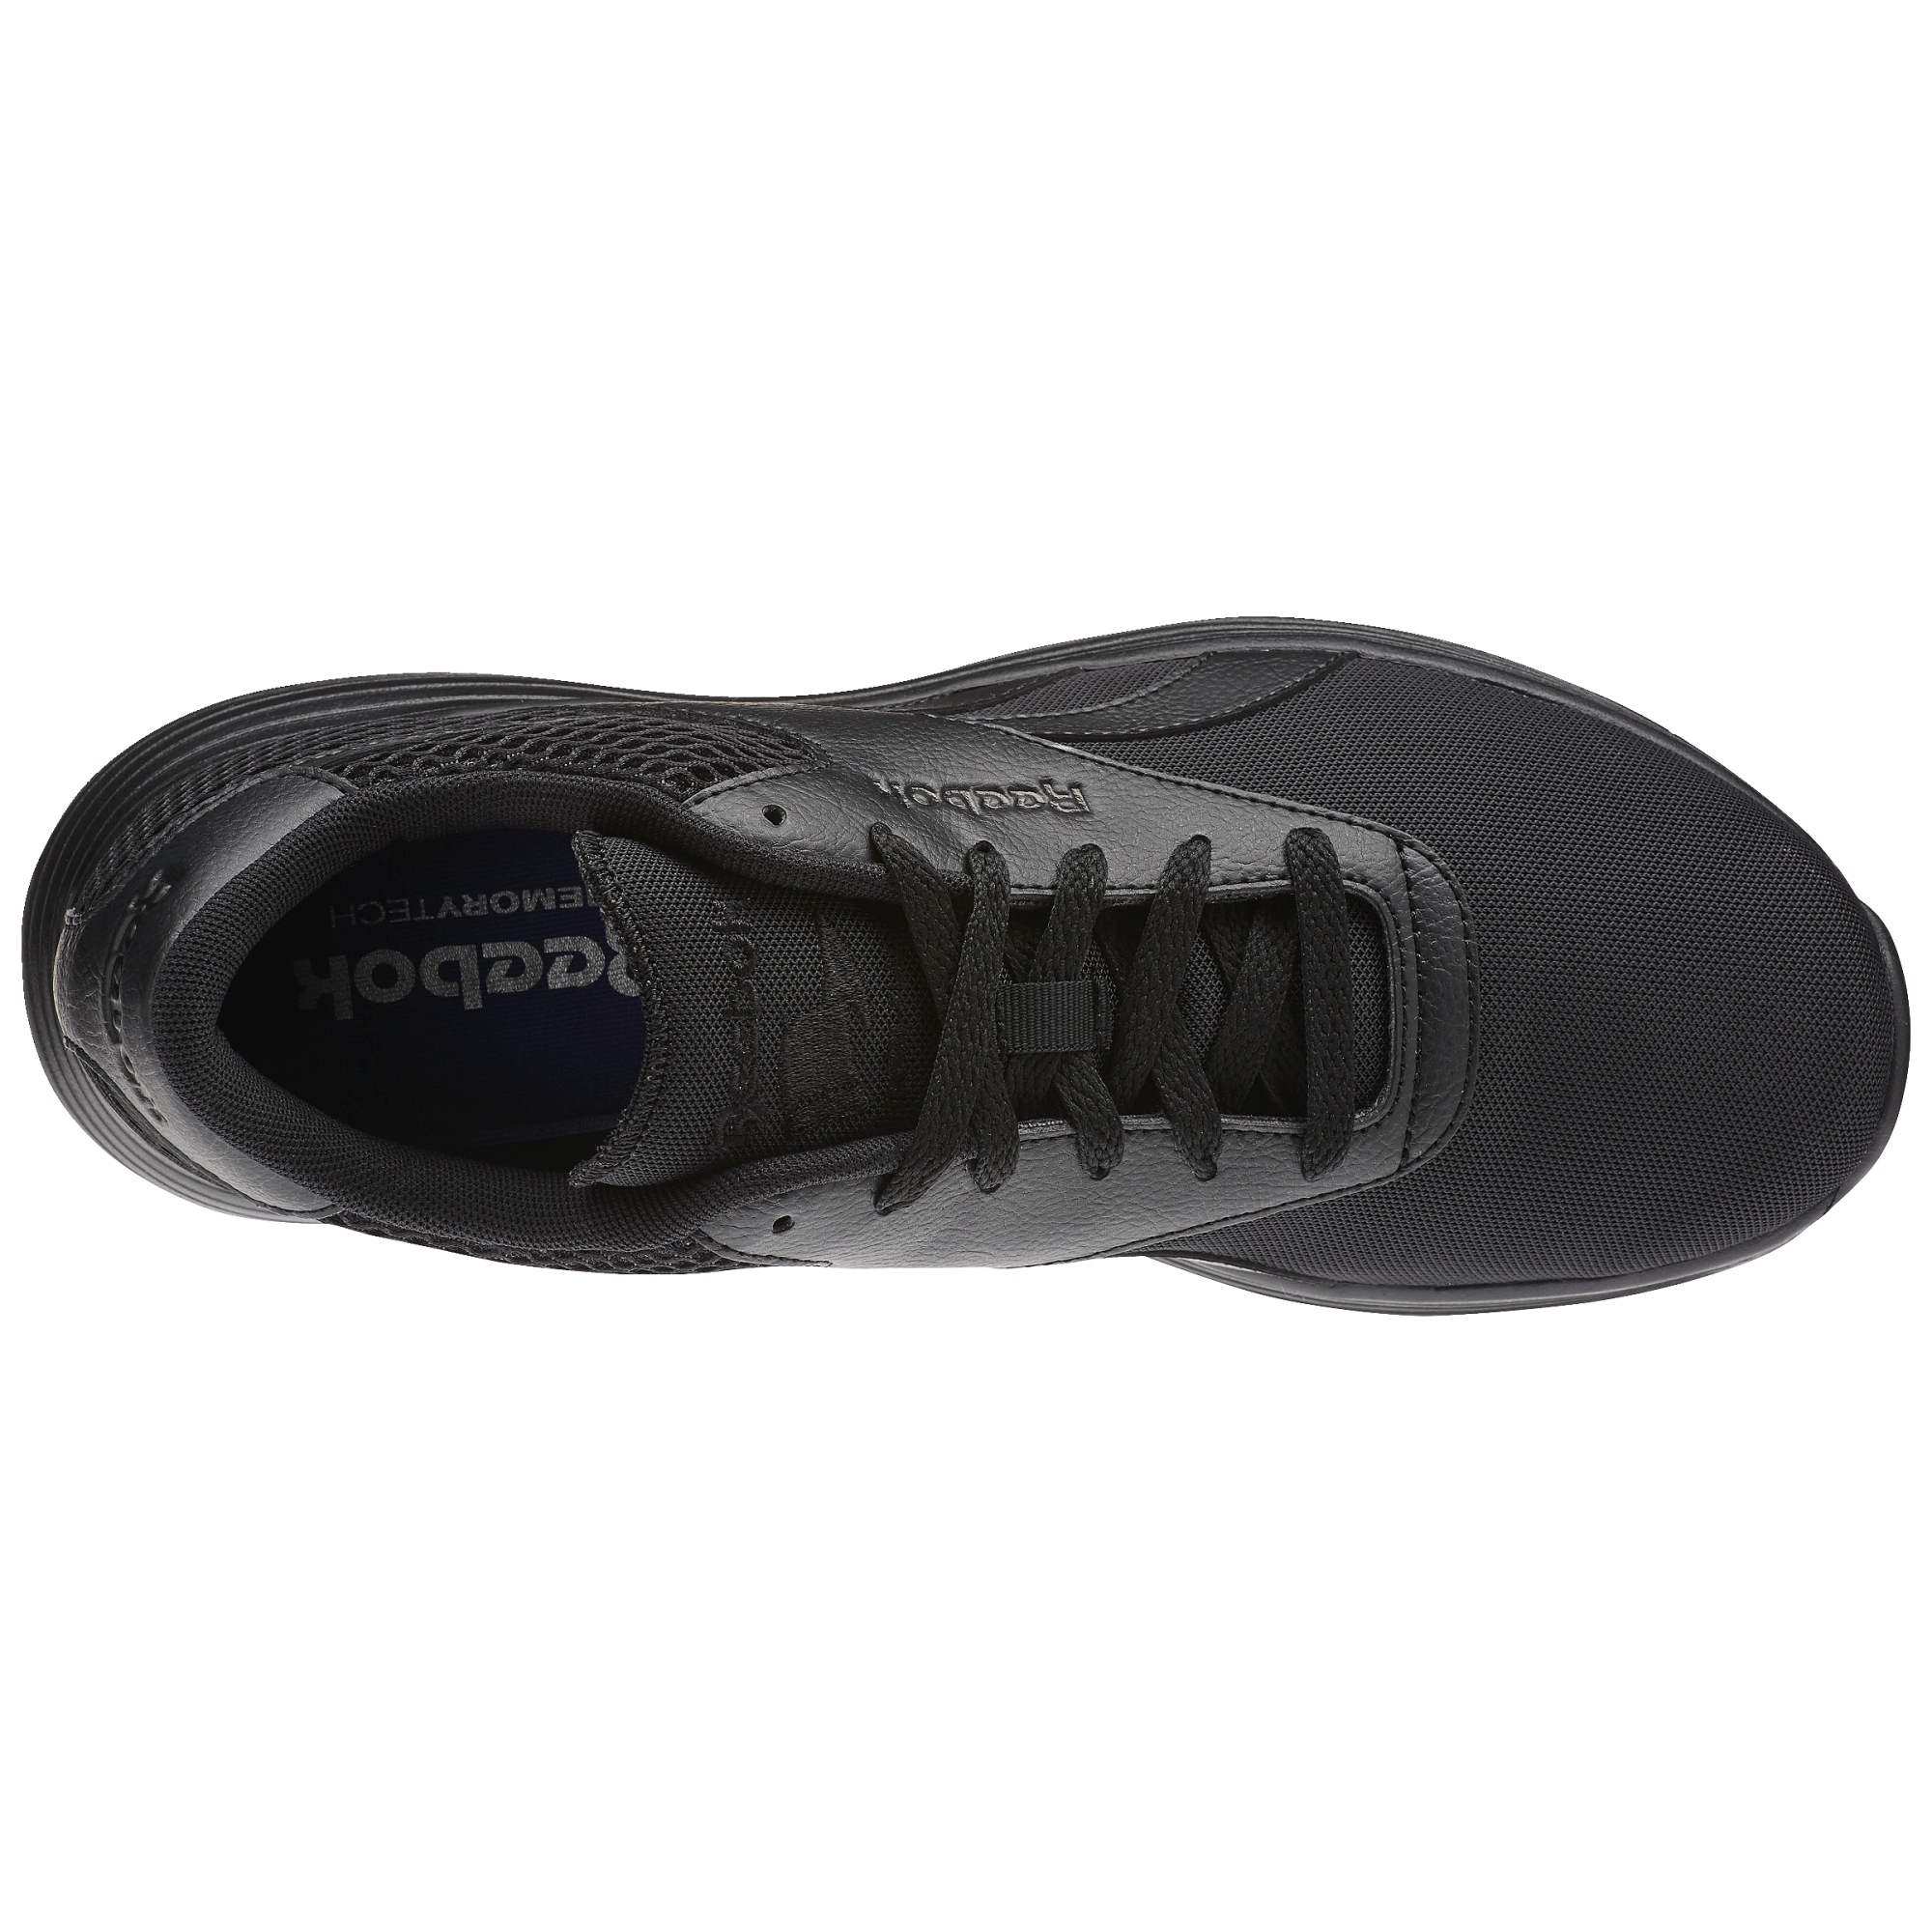 9fb2dc8eb412 buty Reebok Royal Ec Ride AQ9622 timsport.pl